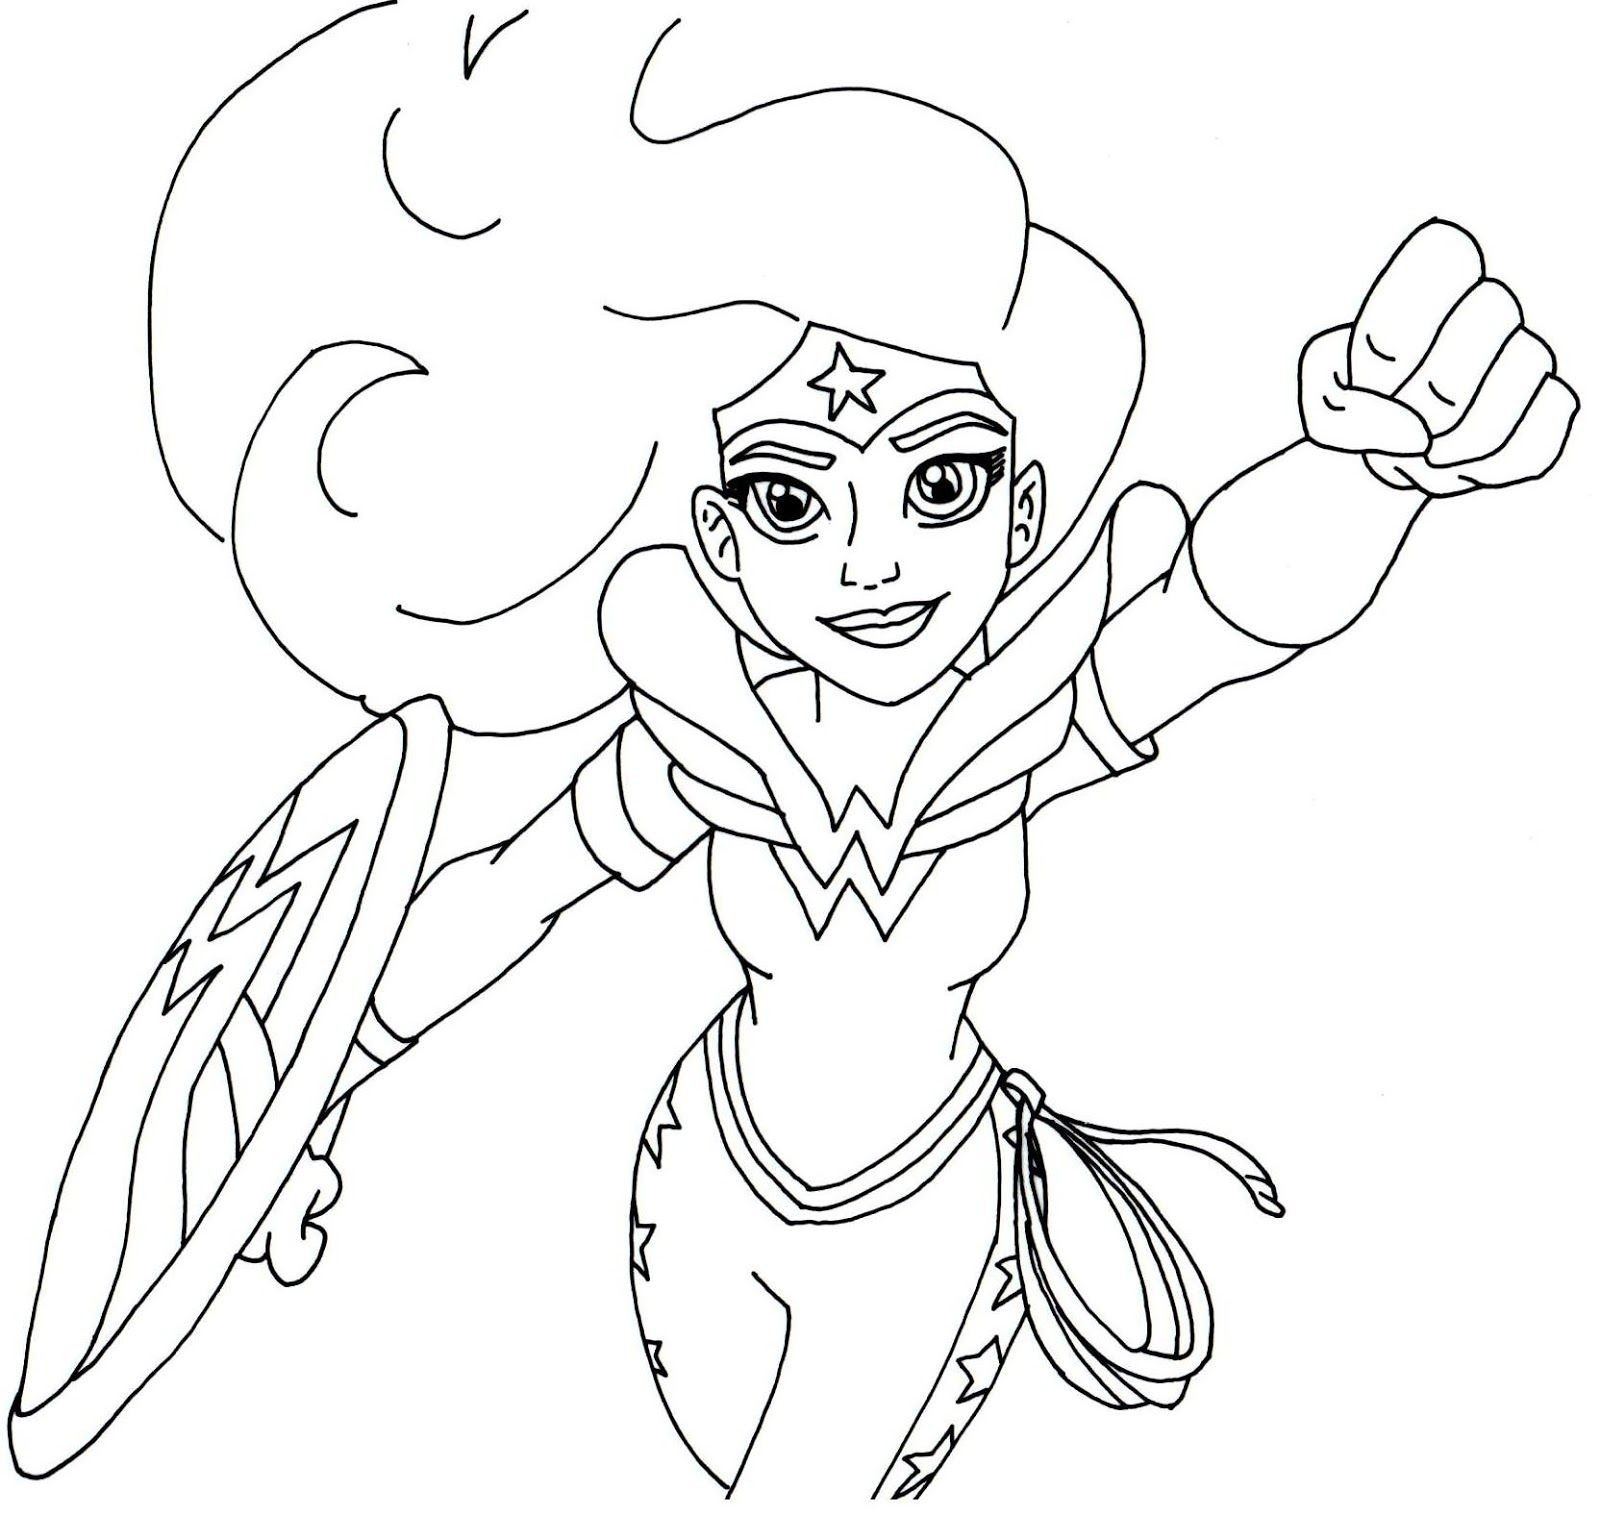 Outline Of A Boy And Girl Coloring Pages Unique Free Printable Super - Free Printable Superhero Coloring Pages